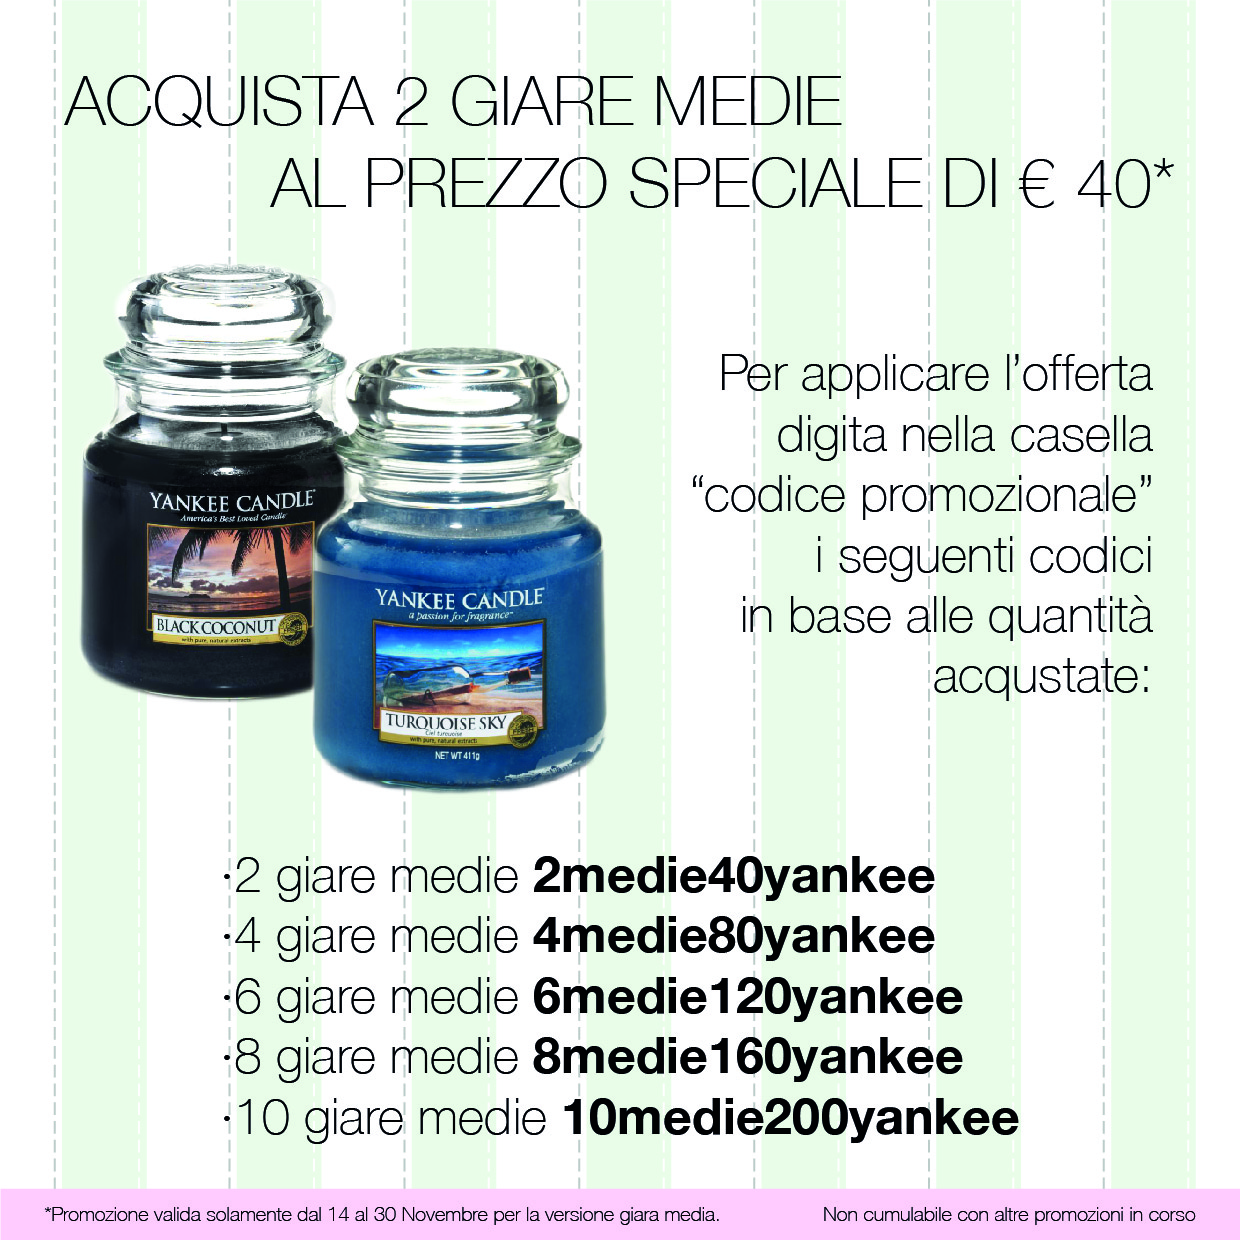 Yankee candle 2 giare medie a 40 floricoltura quaiato for Mobili yankee candle